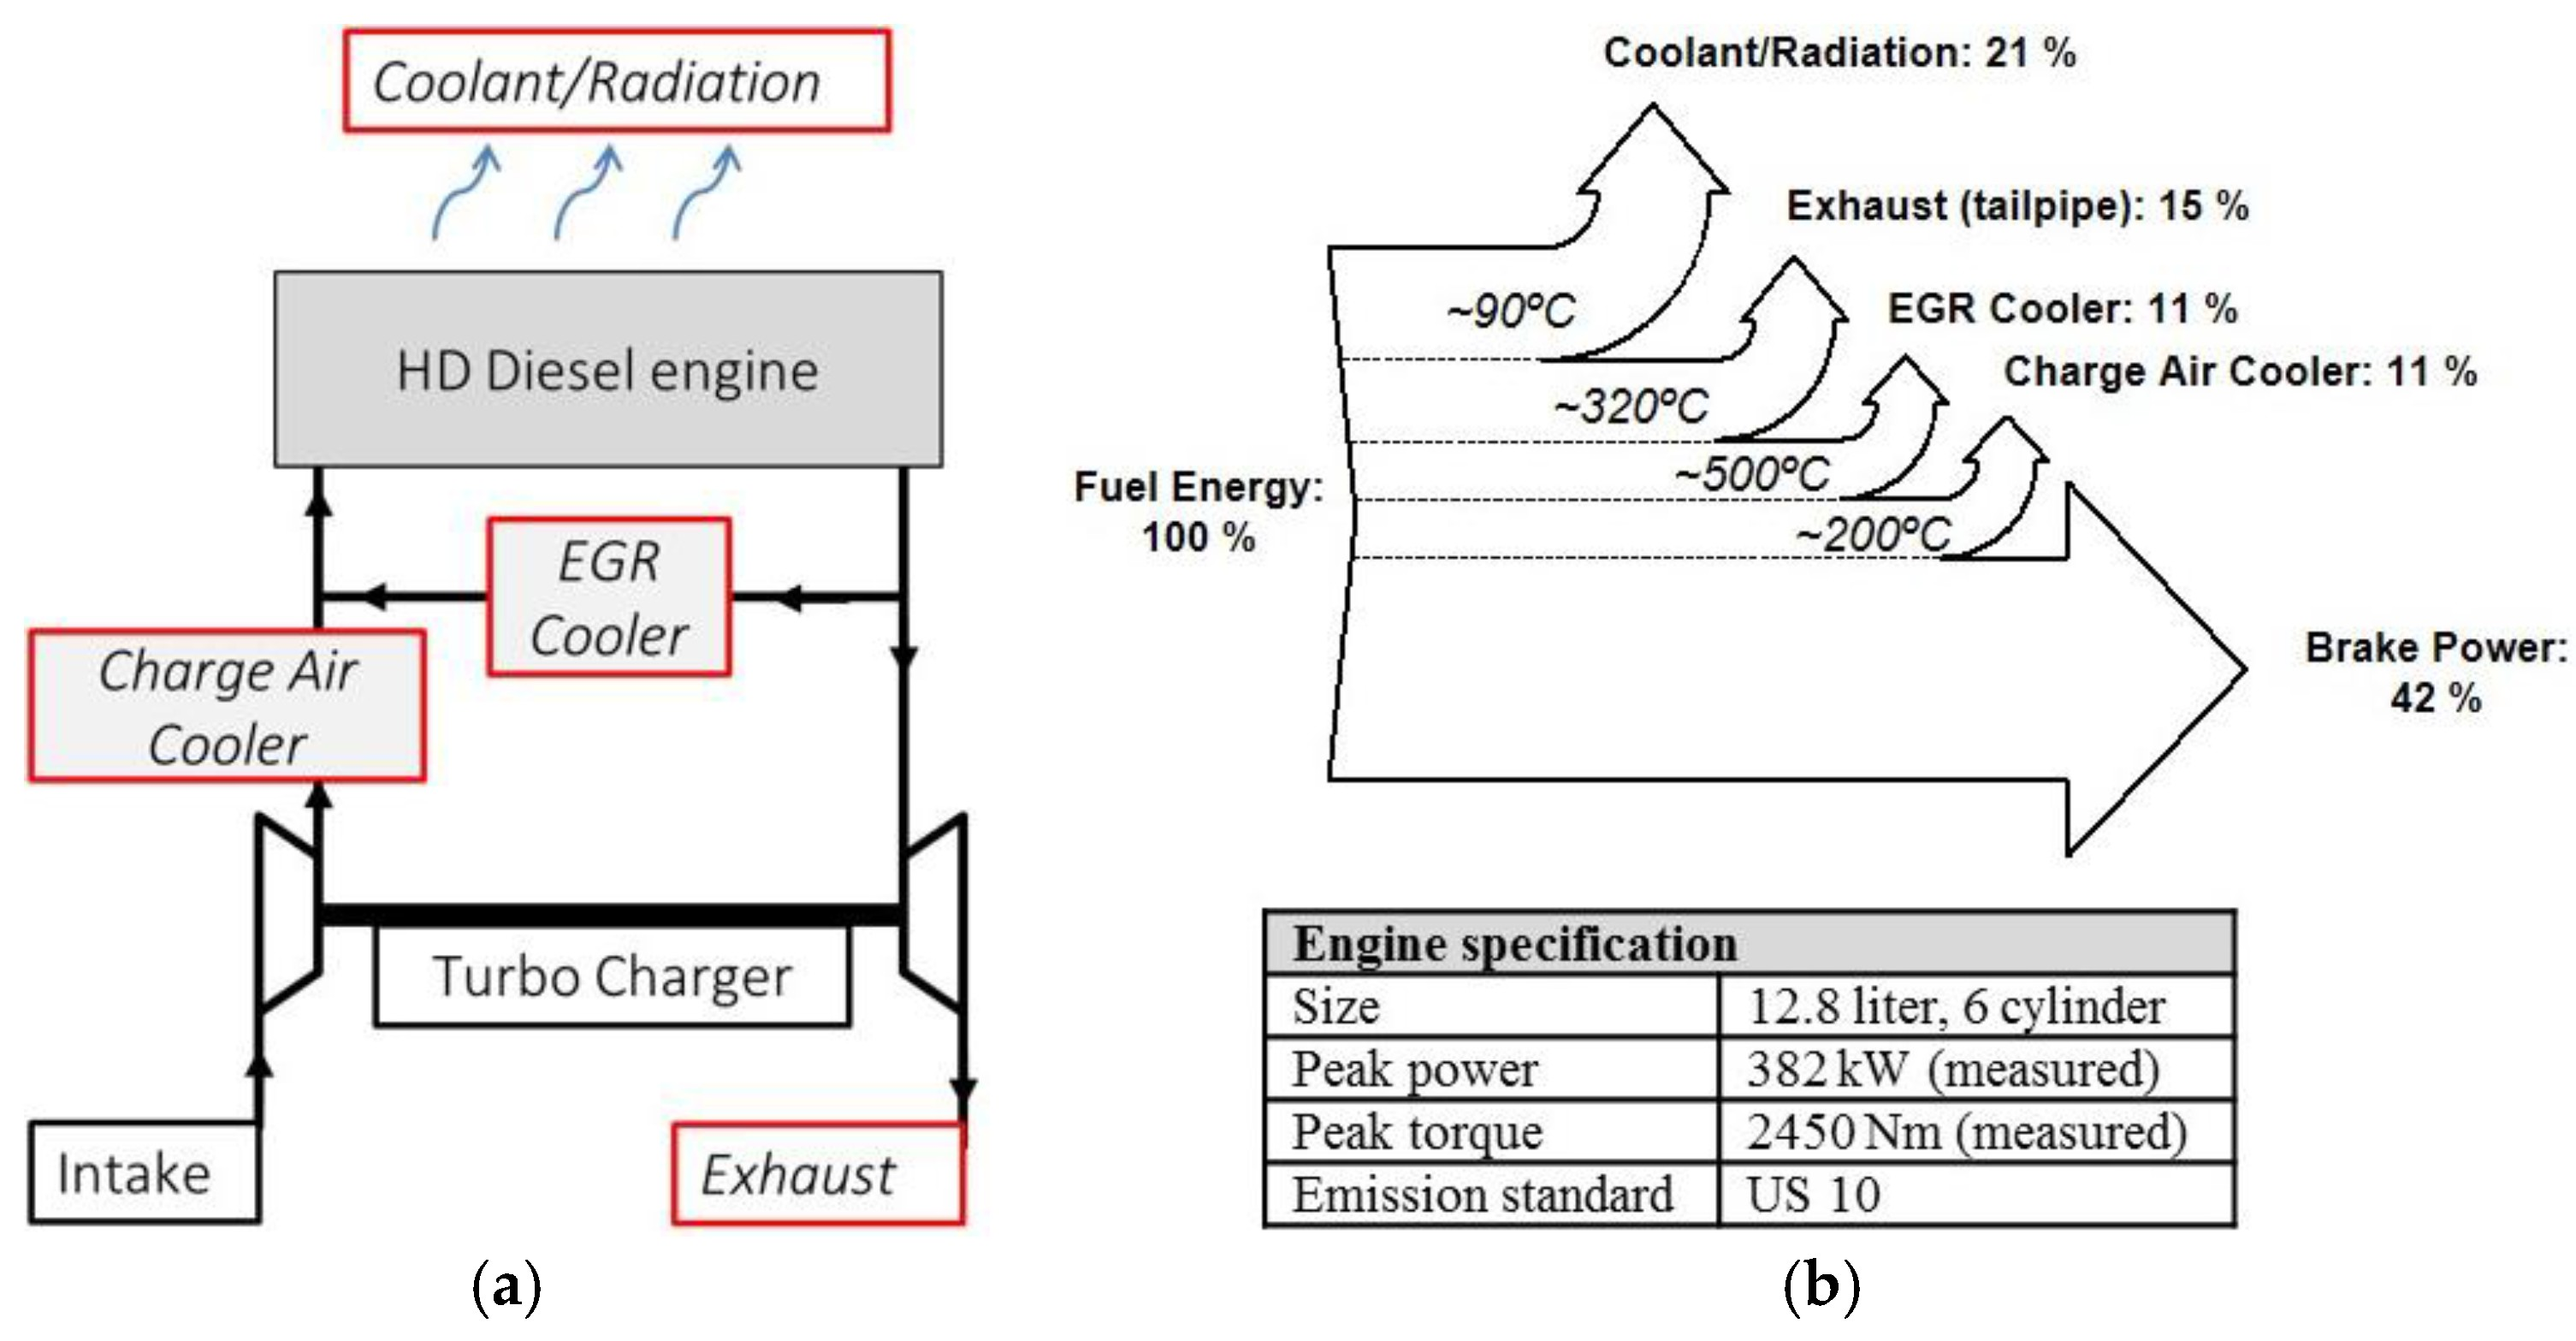 Pv Diagram Of Diesel Engine Energies Free Full Text Of Pv Diagram Of Diesel Engine